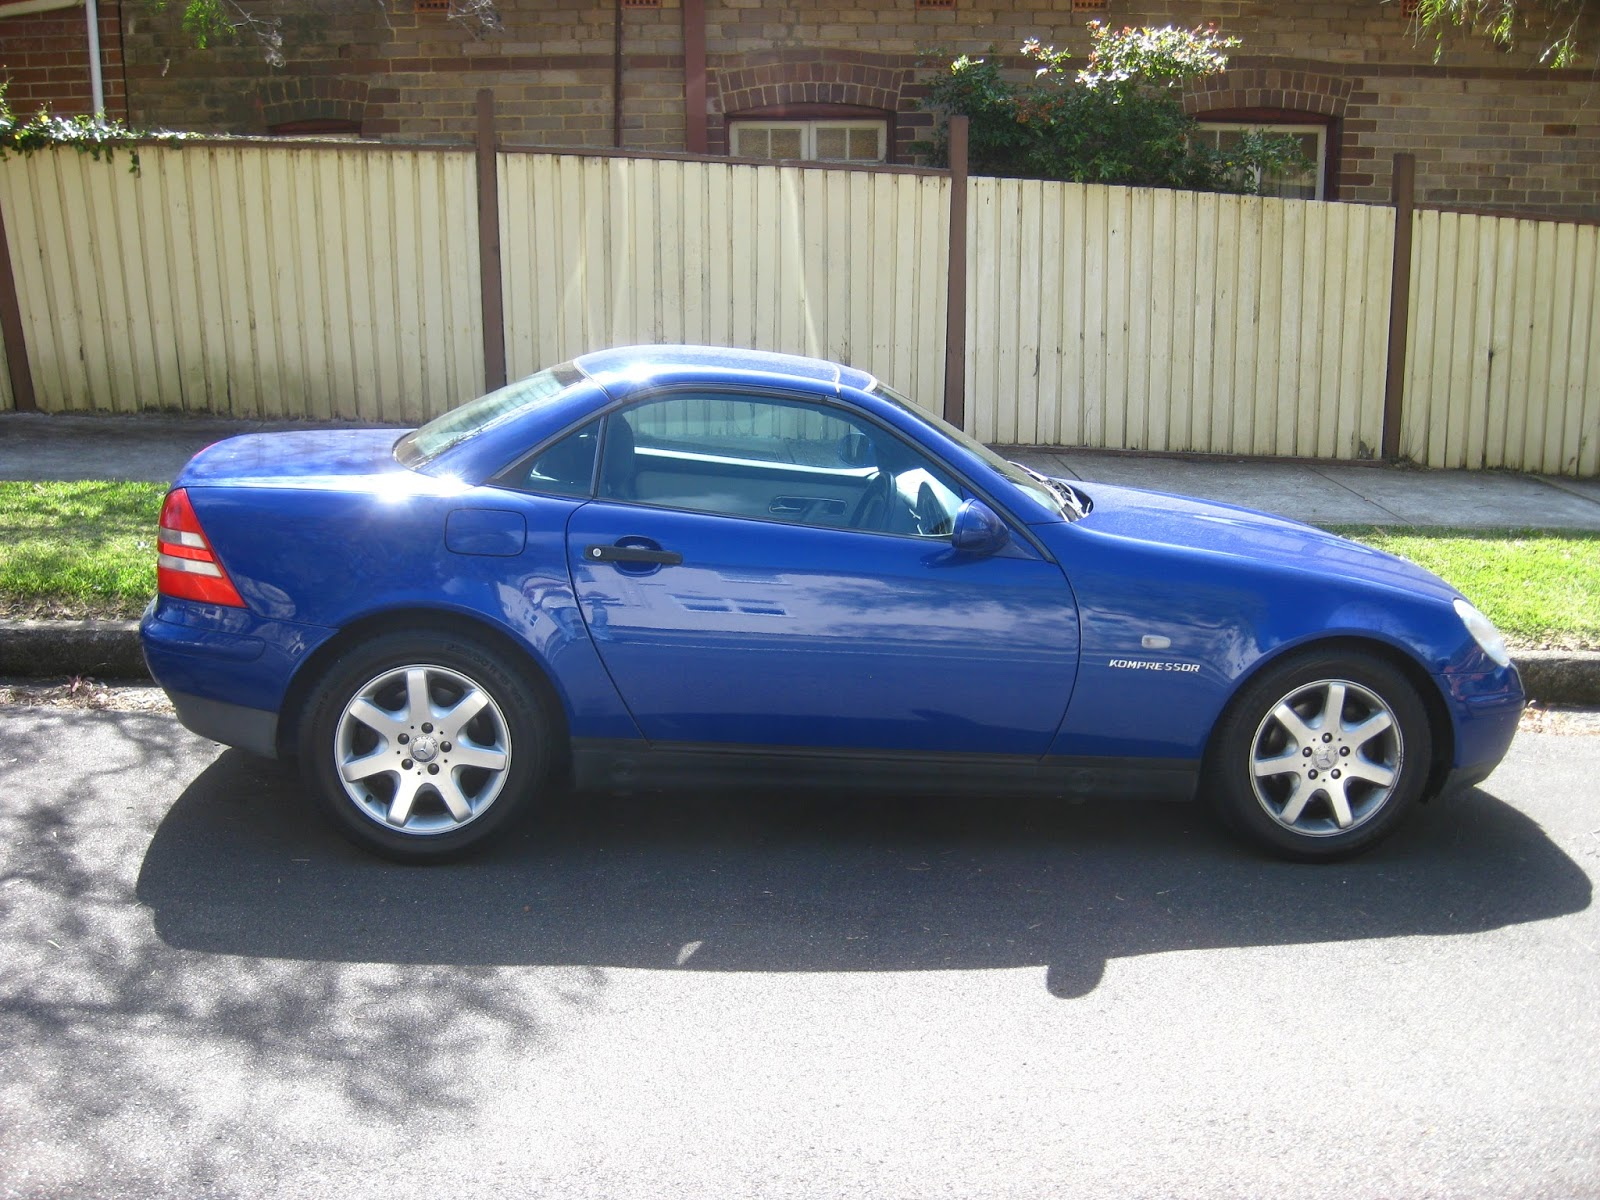 Aussie old parked cars 1997 mercedes benz r170 slk 230 for Mercedes benz slk230 kompressor